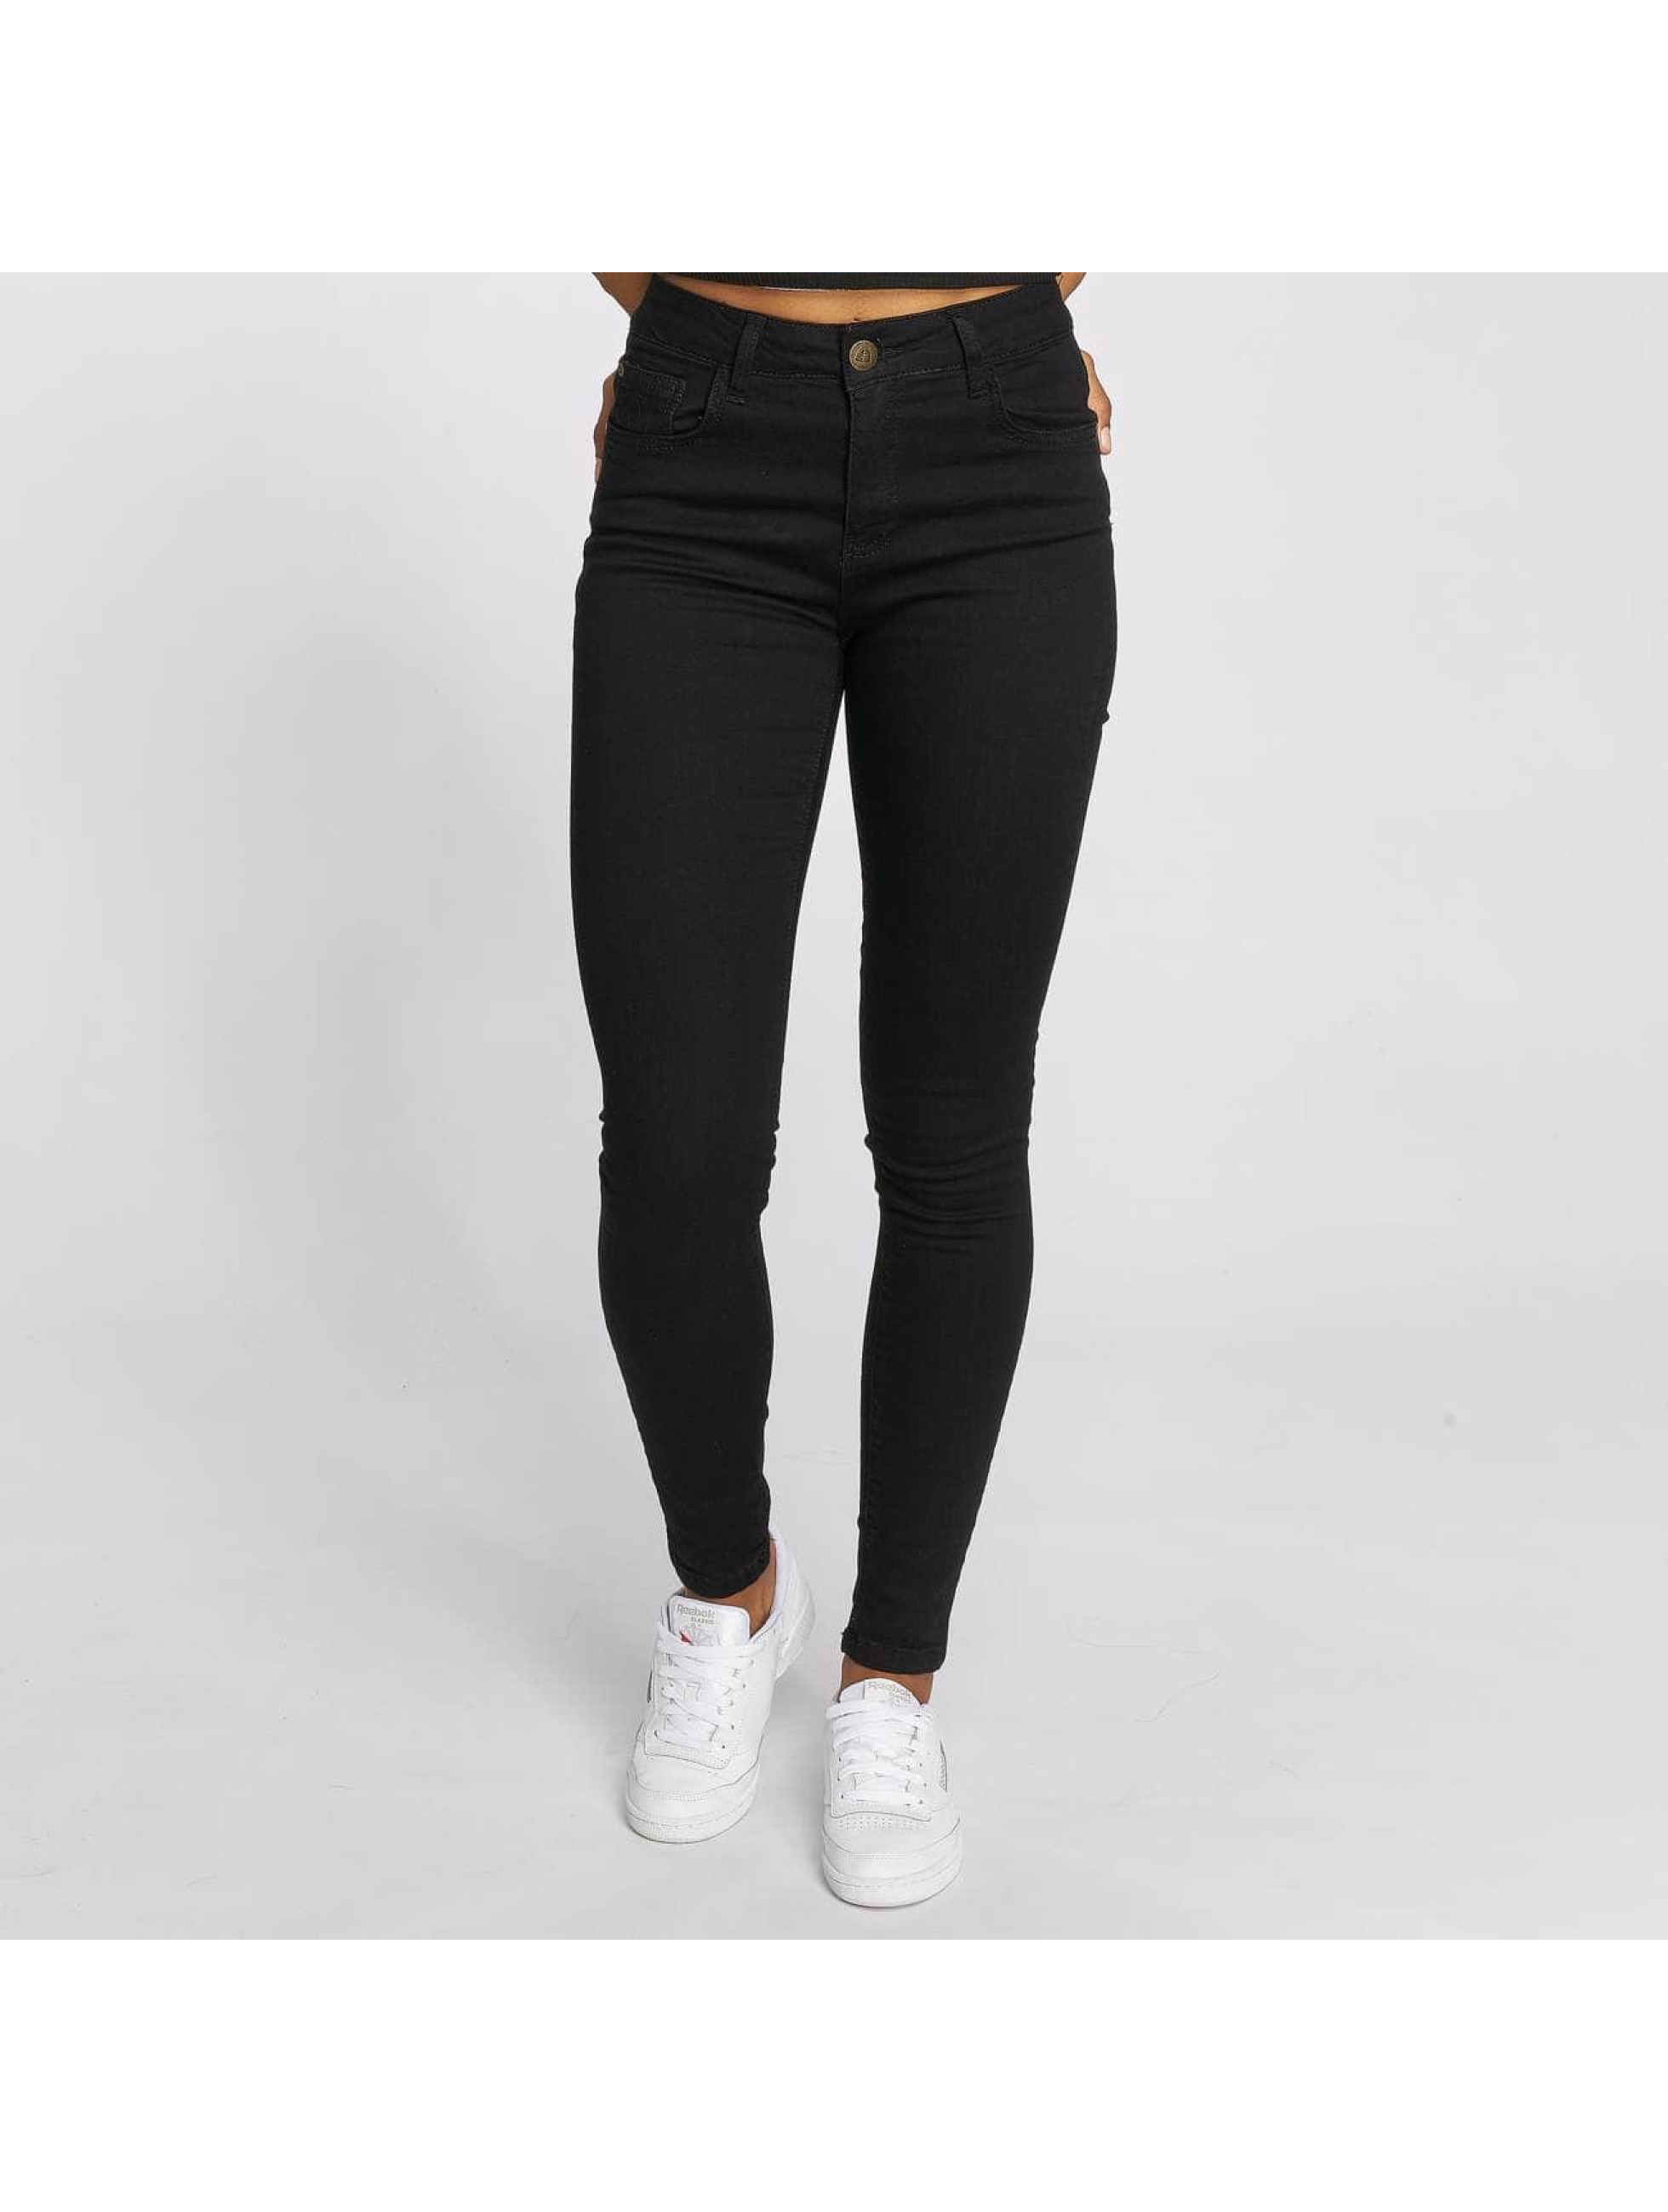 Just Rhyse / Skinny Jeans Buttercup in black W 31